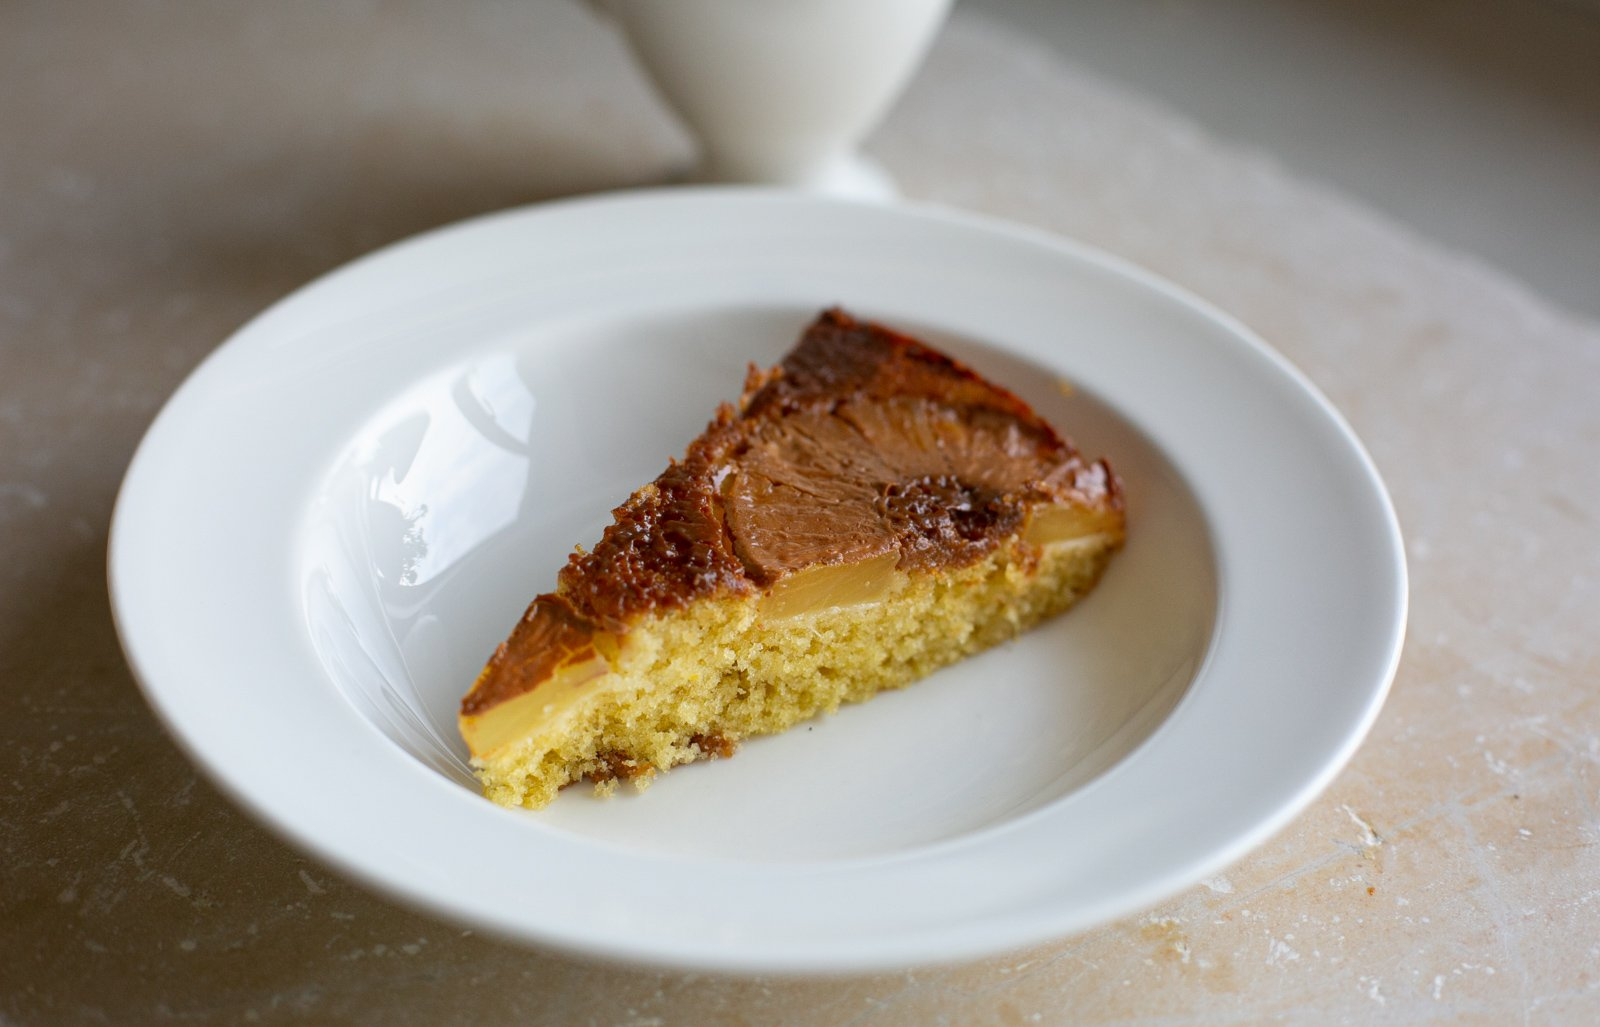 A slice of caramel pineapple summer sponge in a bowl